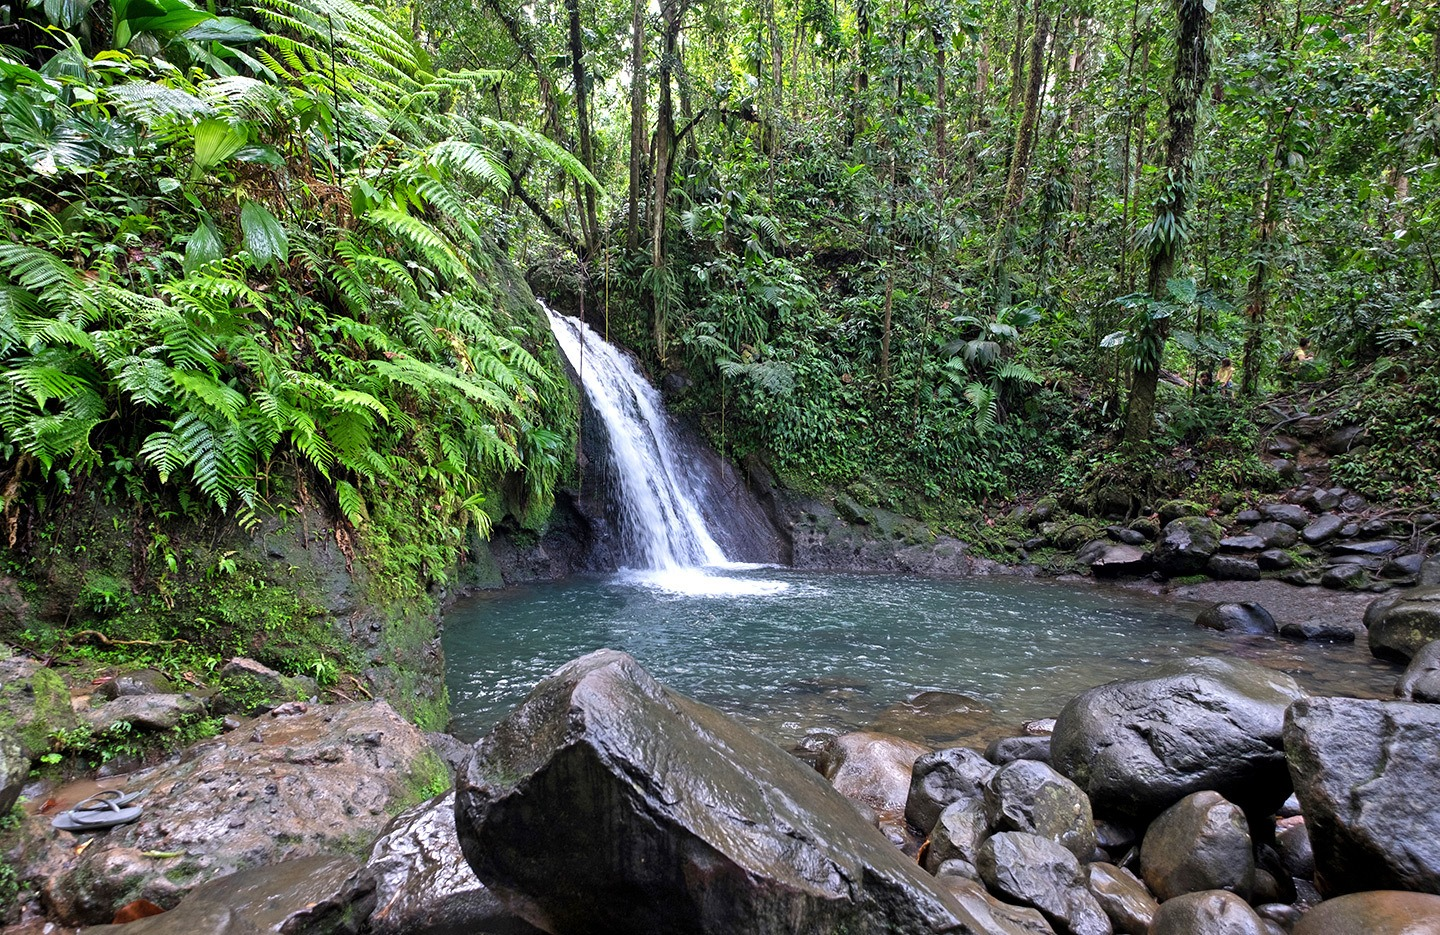 The Cascade aux Ecrevisses waterfall in Basse-Terre, Guadeloupe